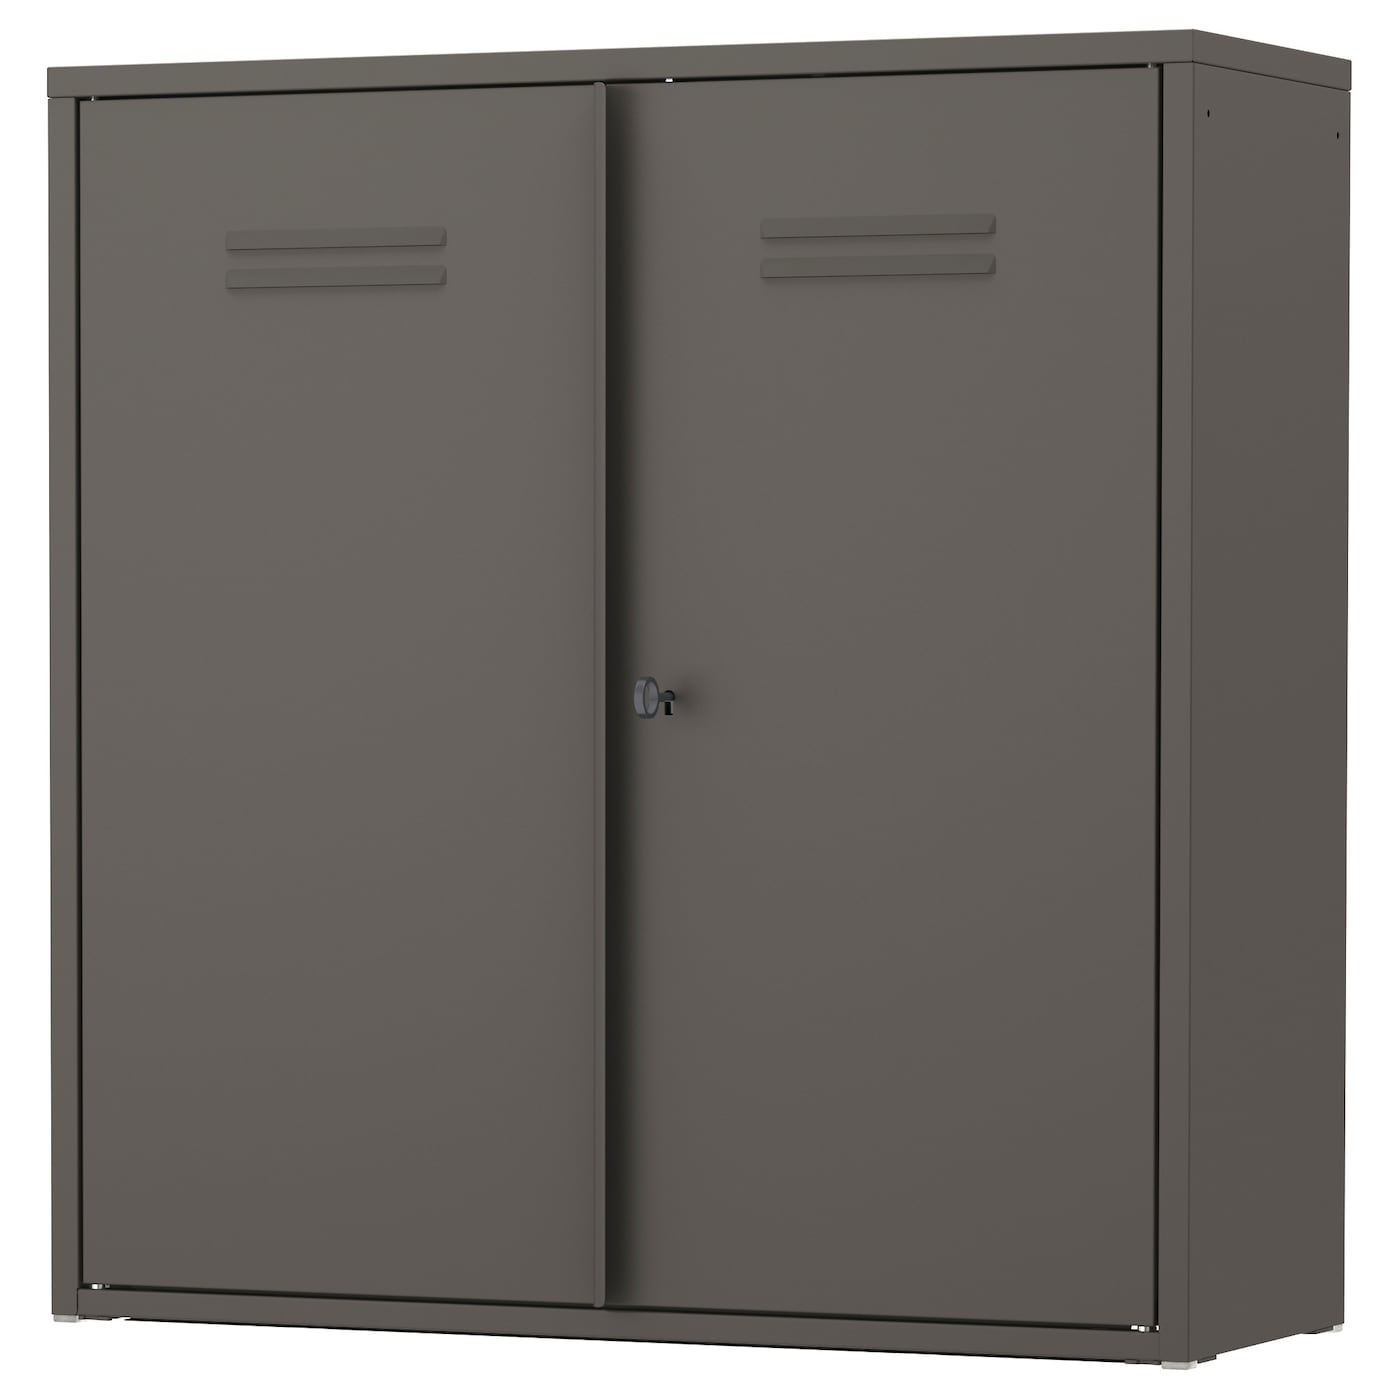 ivar cabinet with doors grey 80 x 83 cm ikea. Black Bedroom Furniture Sets. Home Design Ideas